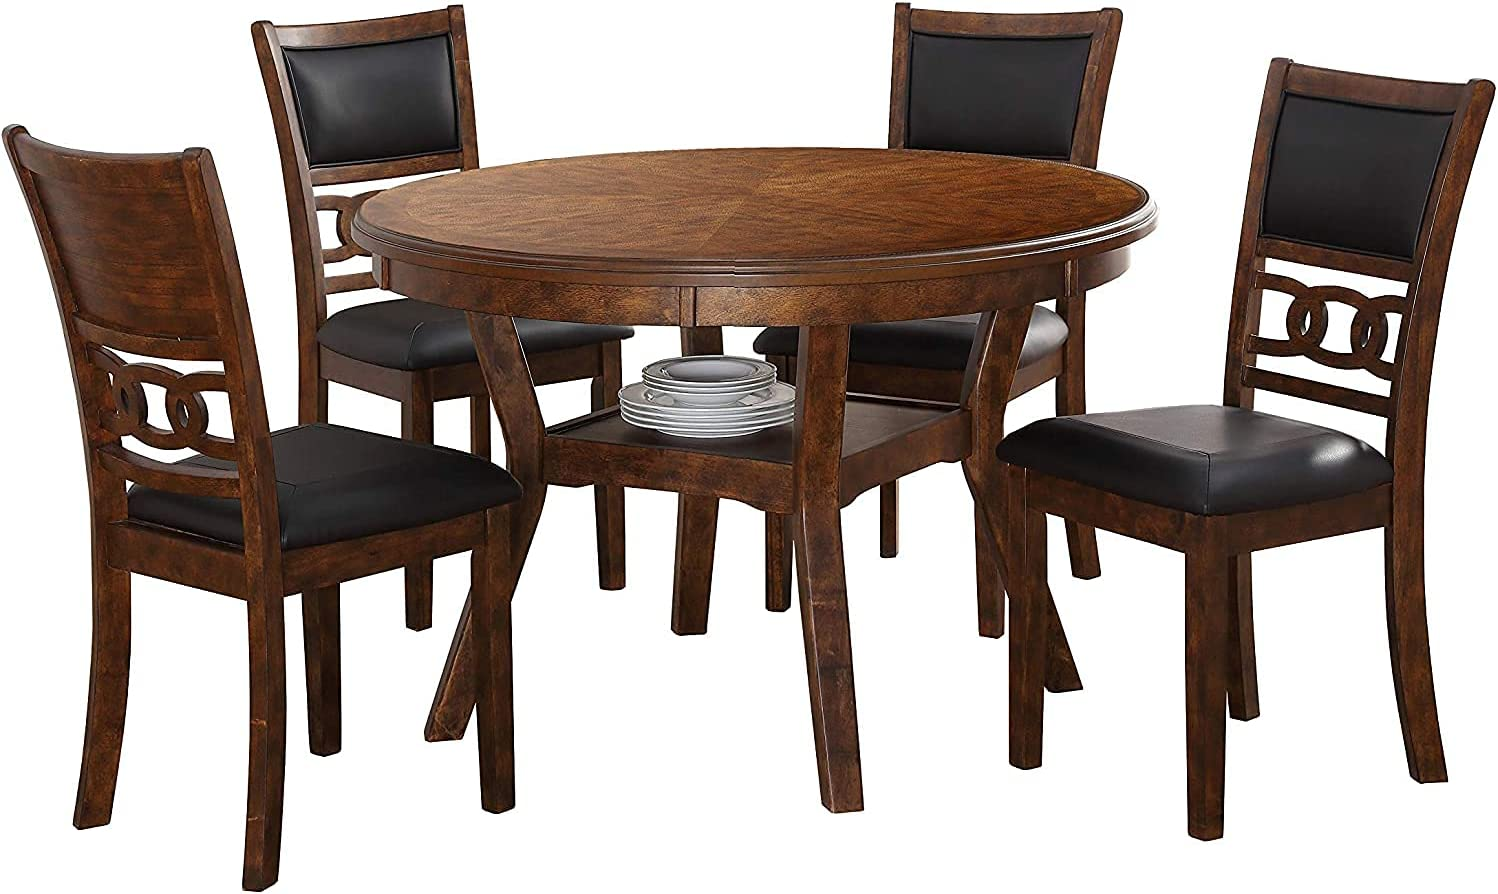 New Classic Furniture Gia 5-Piece Round Set with 1 Dining Table and 4 Chairs, 47